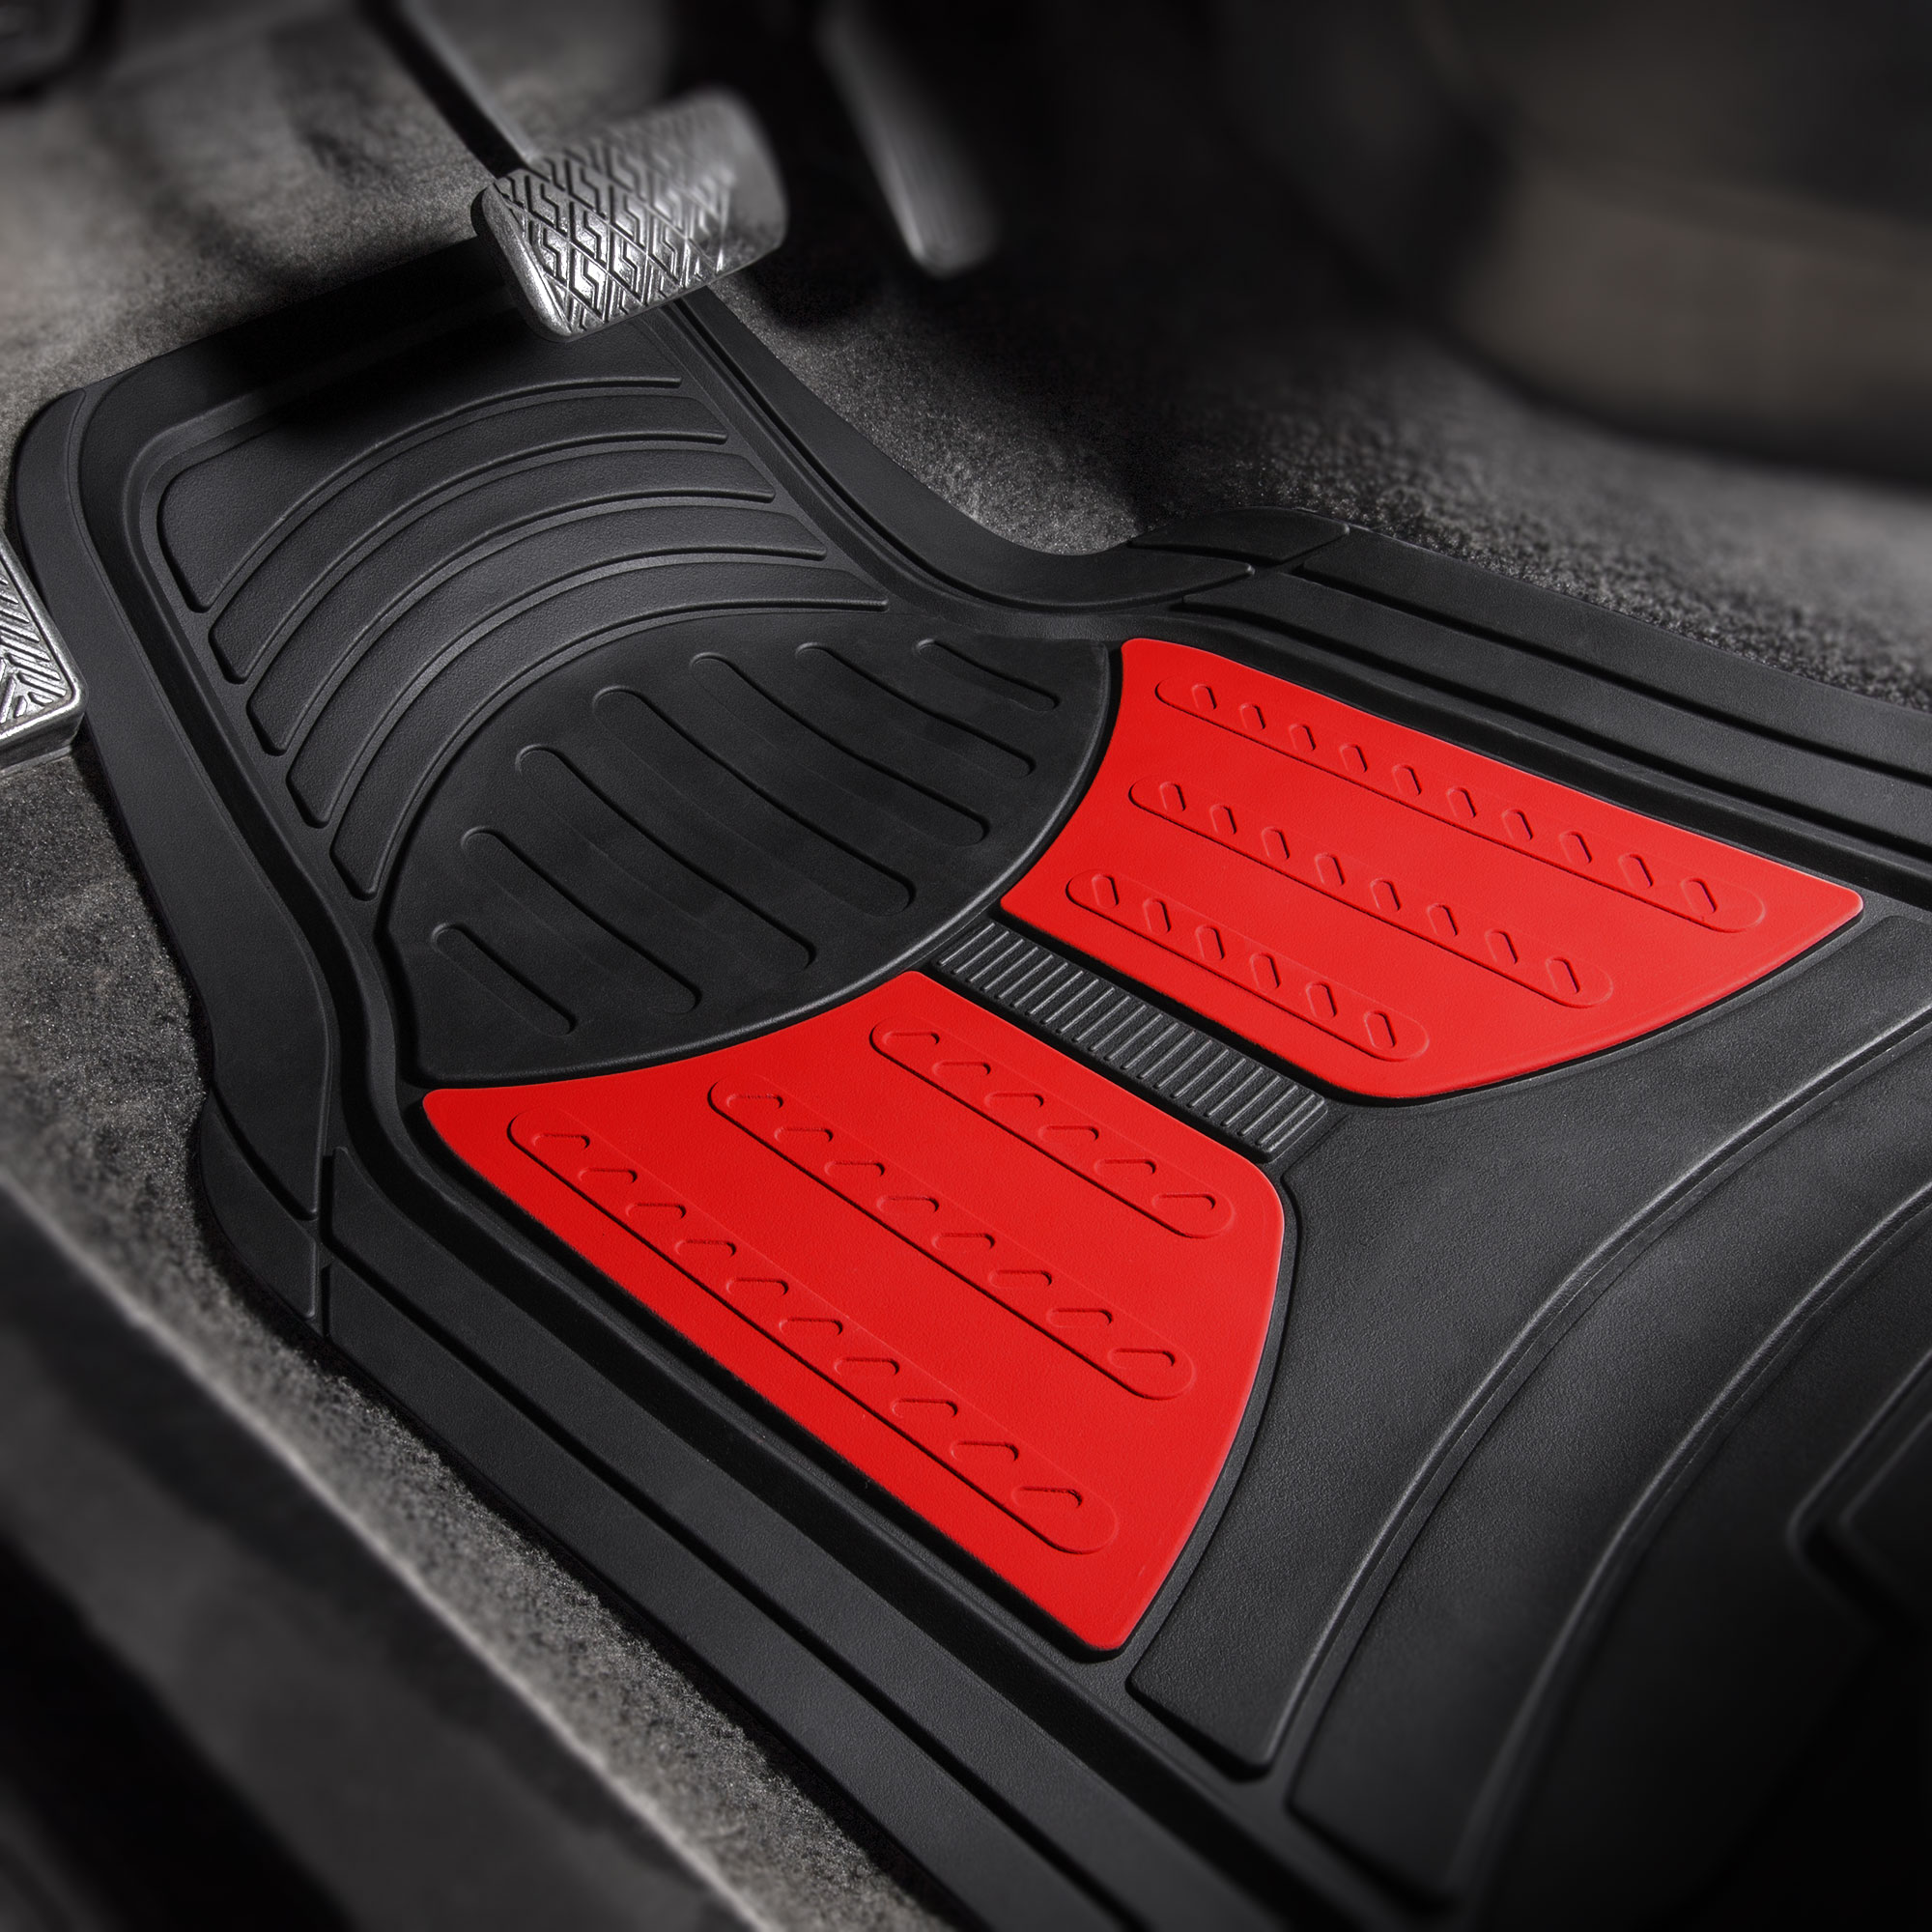 thumbnail 29 - Car Floor Mats for All Weather Rubber 2-Tone Design Heavy Duty - 4 Pc Set